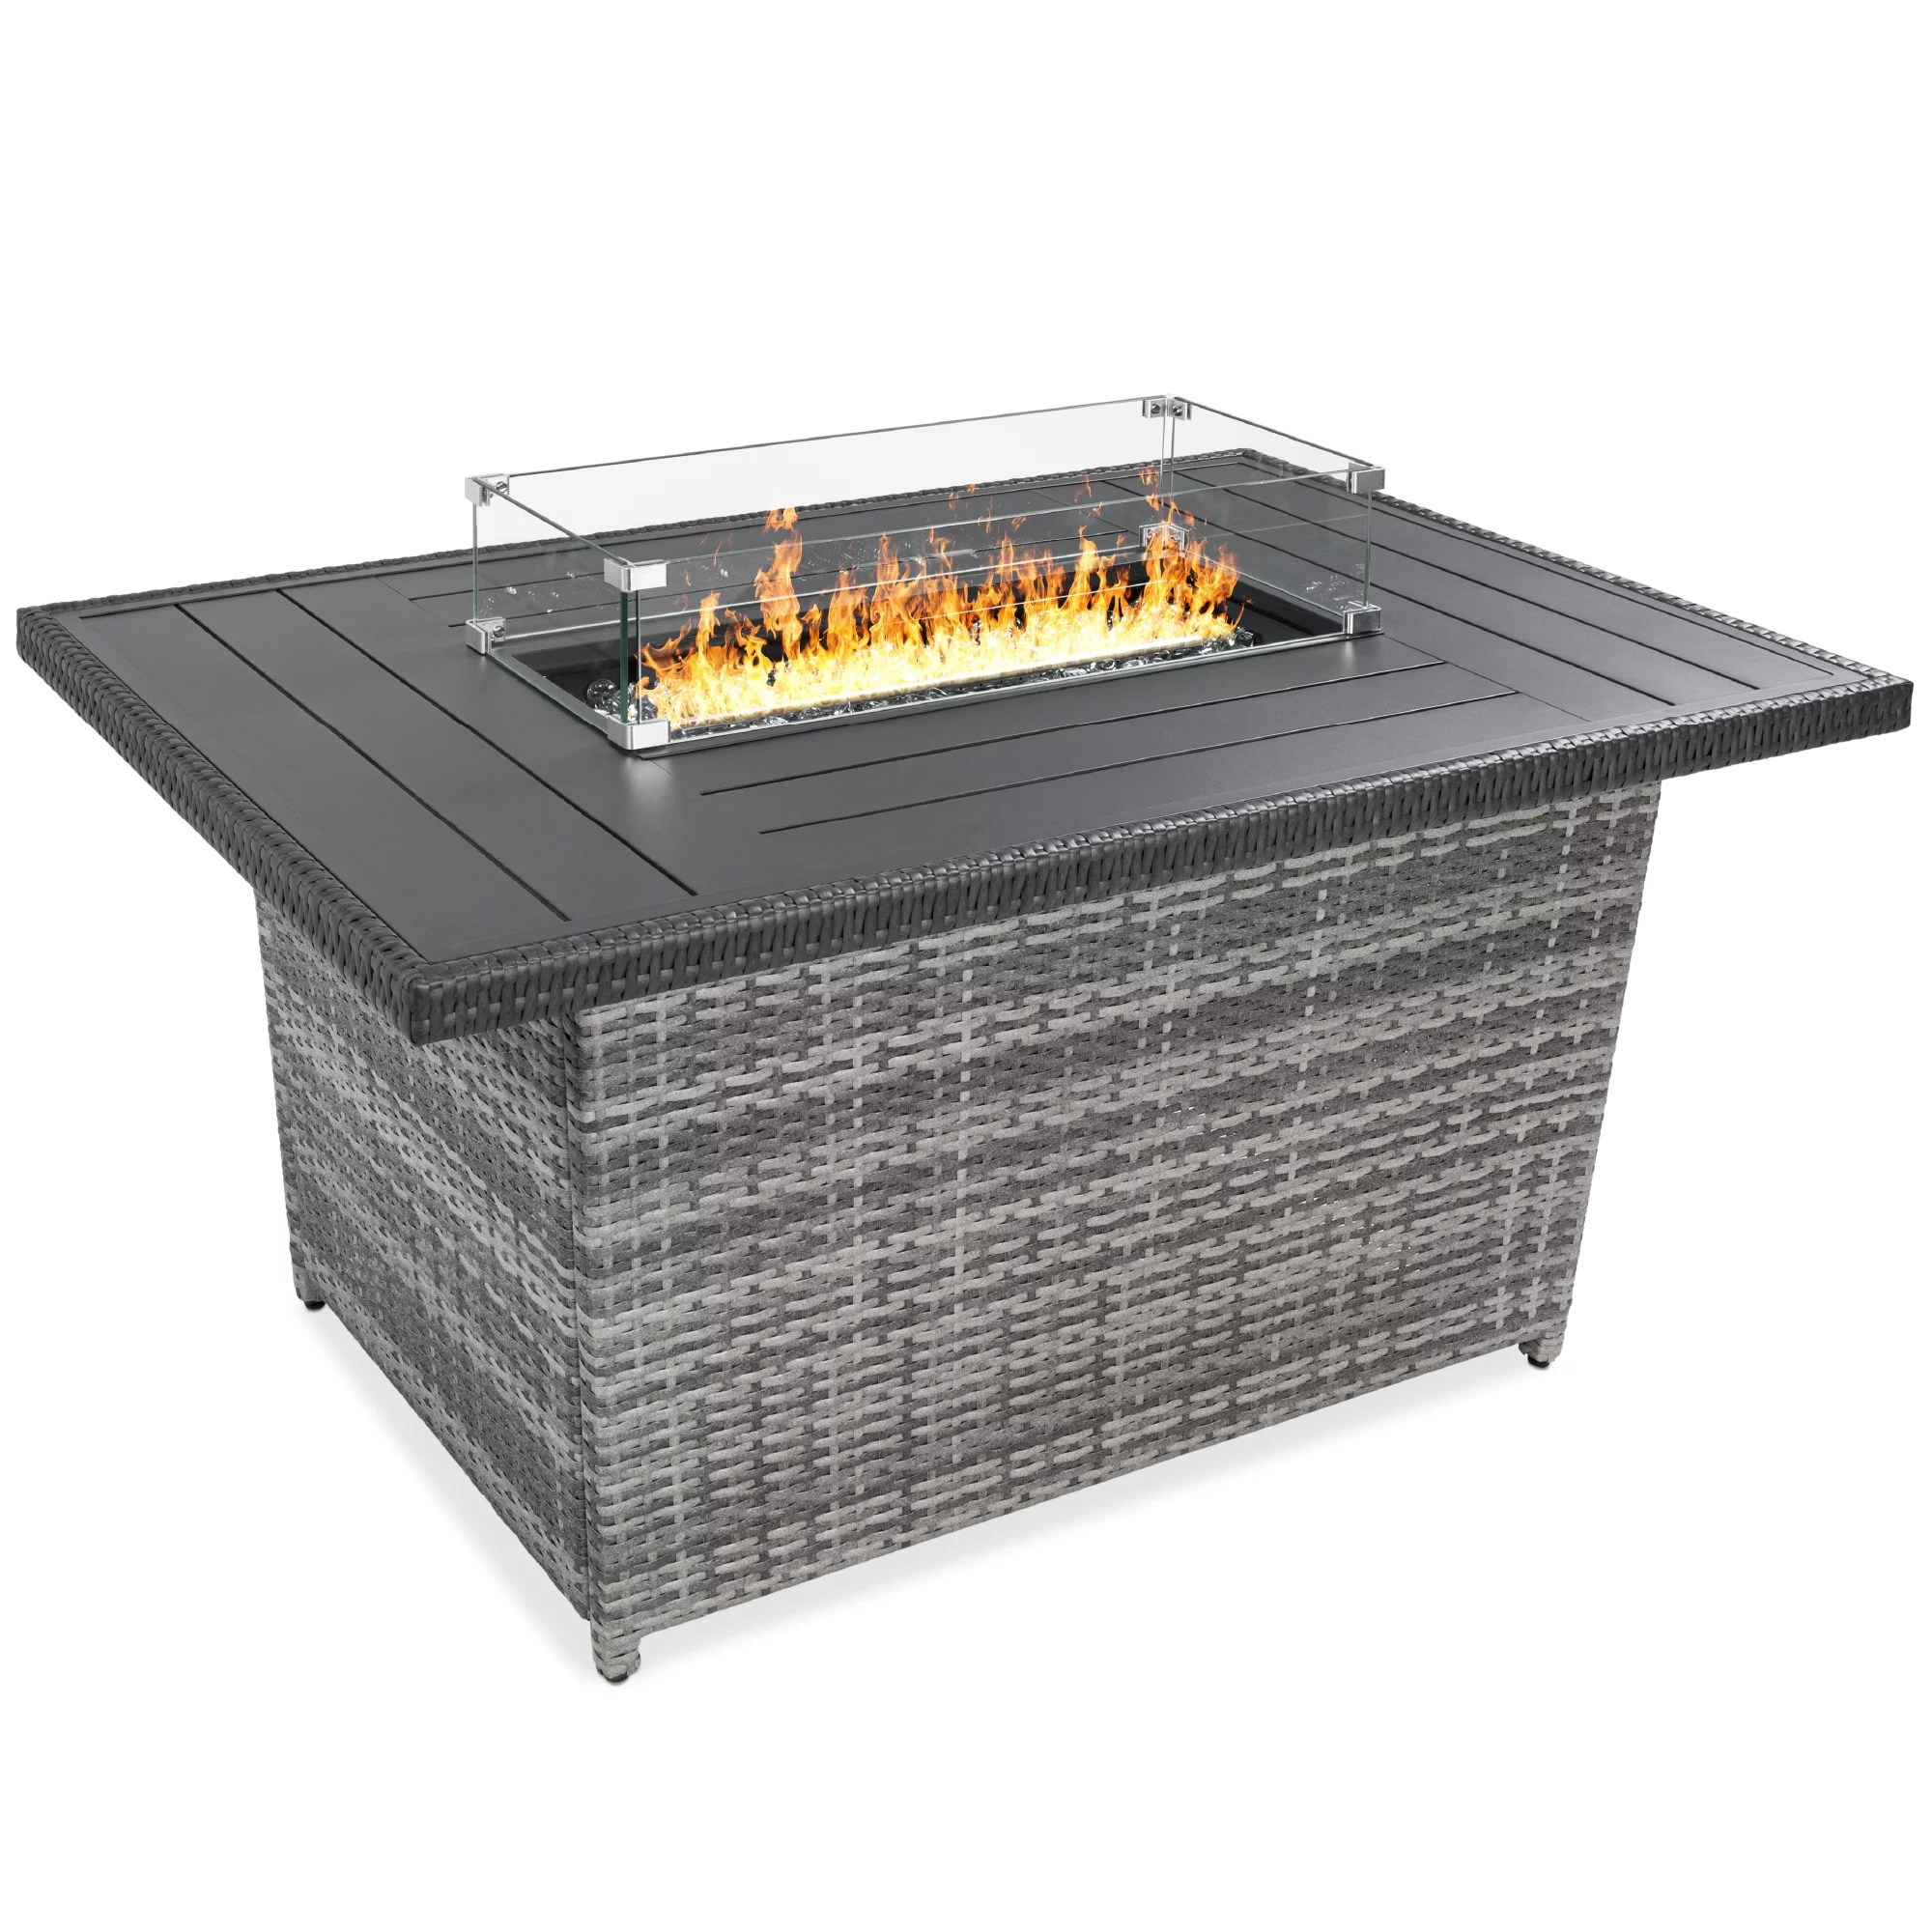 best choice products 52in outdoor wicker propane fire pit table 50 000 btu w glass wind guard tank holder cover gray